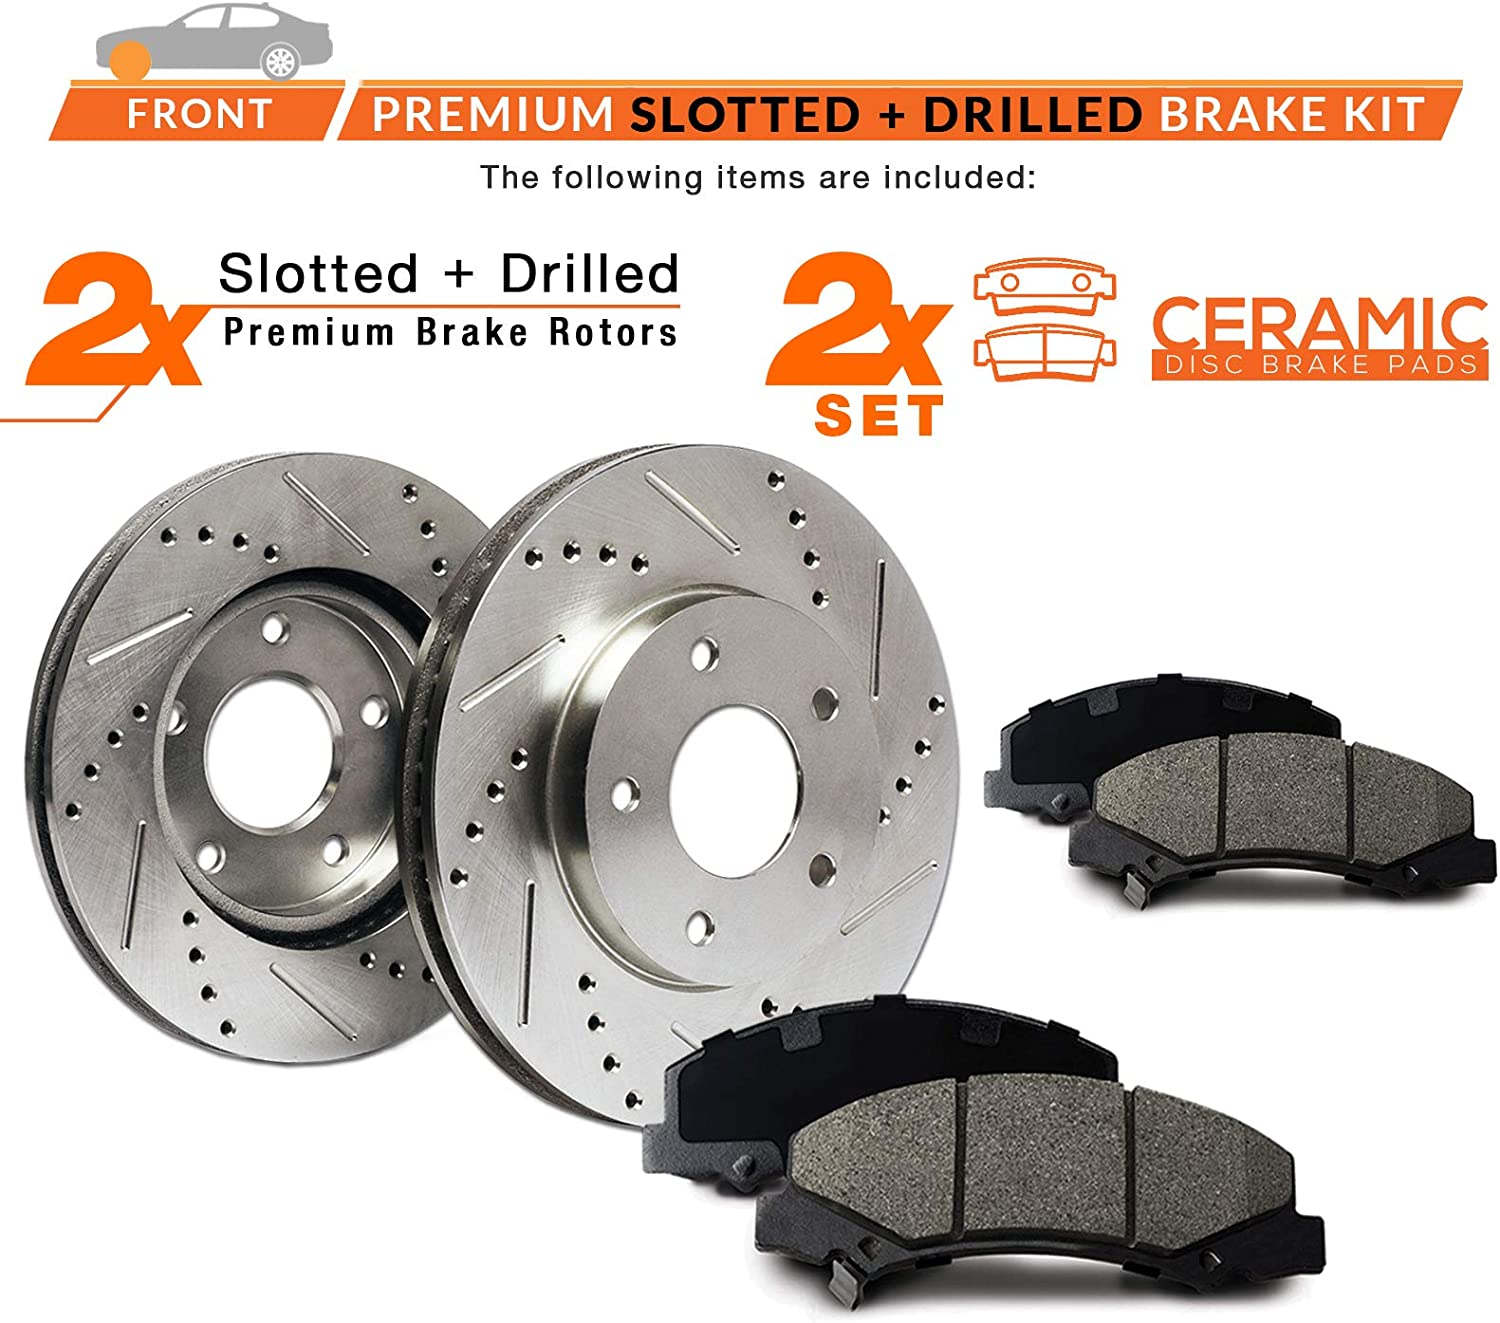 Max Brakes Front Performance Brake Kit Fits: 2008 08 2009 09 2010 10 2011 11 Subaru Tribeca Premium Slotted Drilled Rotors + Ceramic Pads KT016831